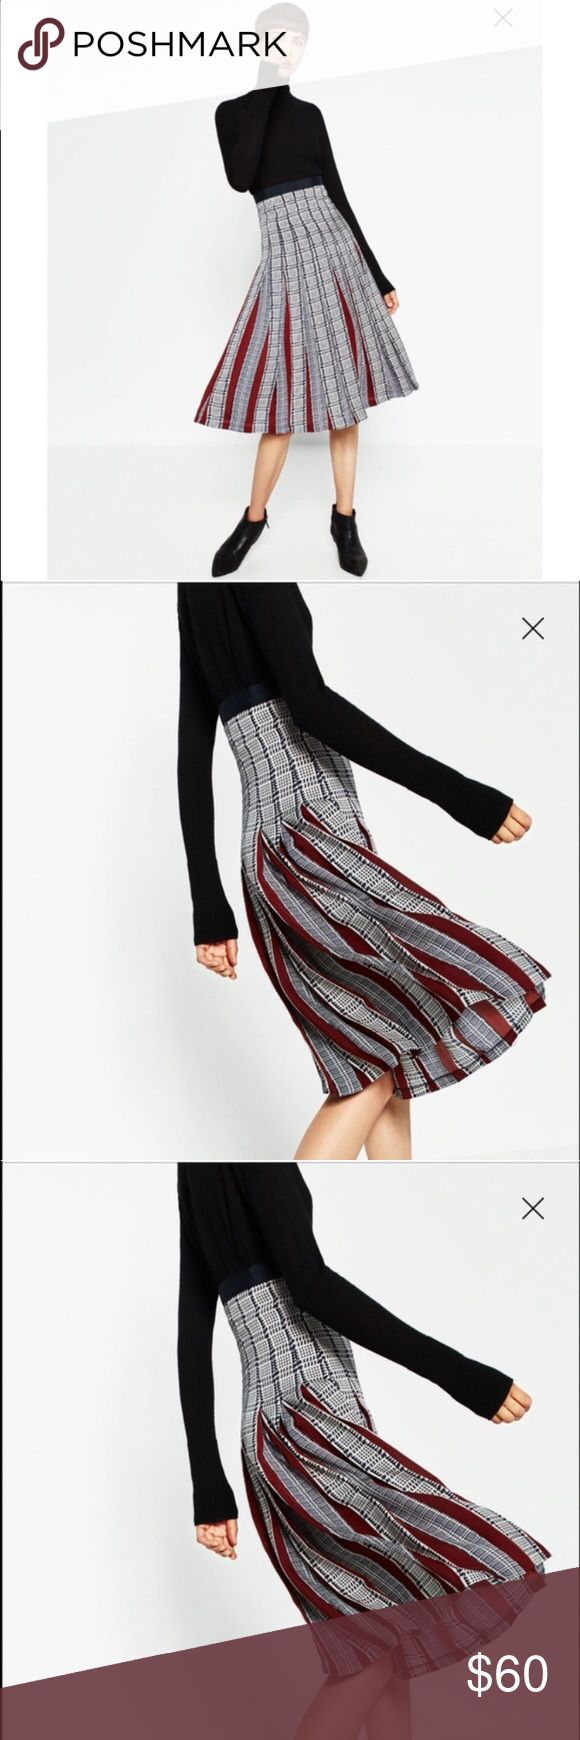 ZARA Printed Accordion-Pleat Midi Skirt Silky NWT ZARA Printed Accordion-Pleat Midi Skirt Silky Touch // New With Tags // SOLD OUT ONLINE and IN STORES // True to Size // 15% off on bundles // I ship same-day from pet/smoke-free home. Buy with confidence. I am an expert top seller with close to 400 5-star ratings and A LOT OF LOVE NOTES. Check them out. 😊😎 Zara Skirts Midi